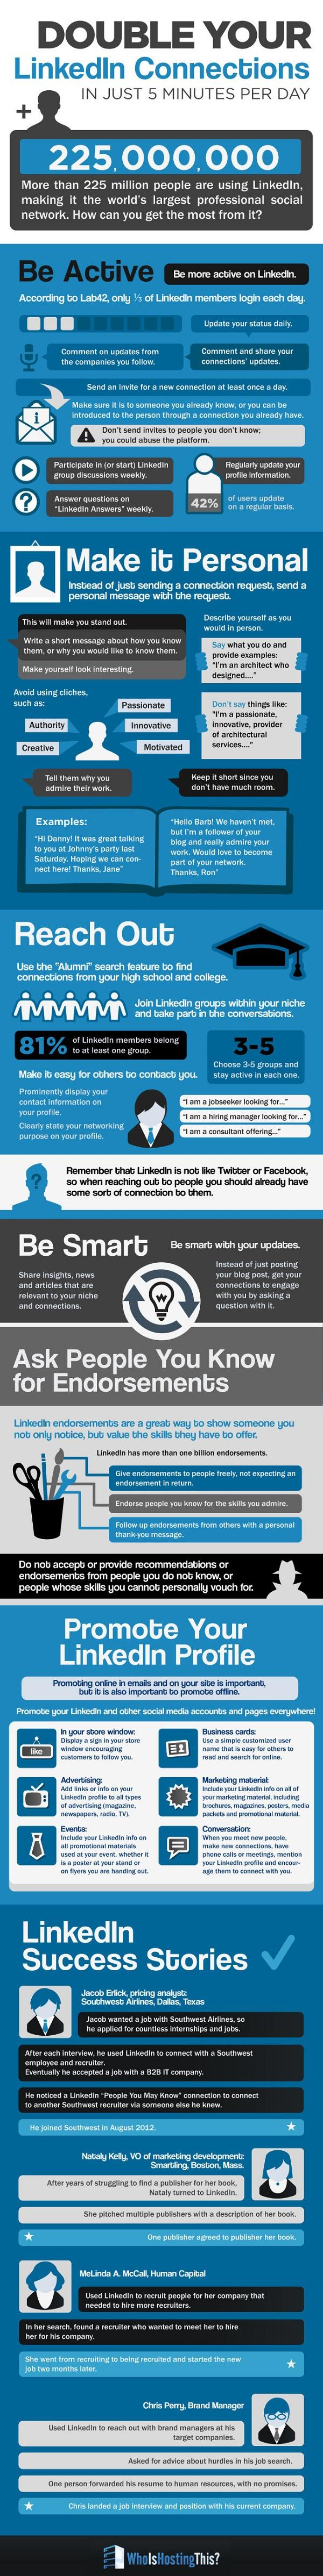 Increase LinkedIn Connections in 7 Steps [INFOGRAPHIC]